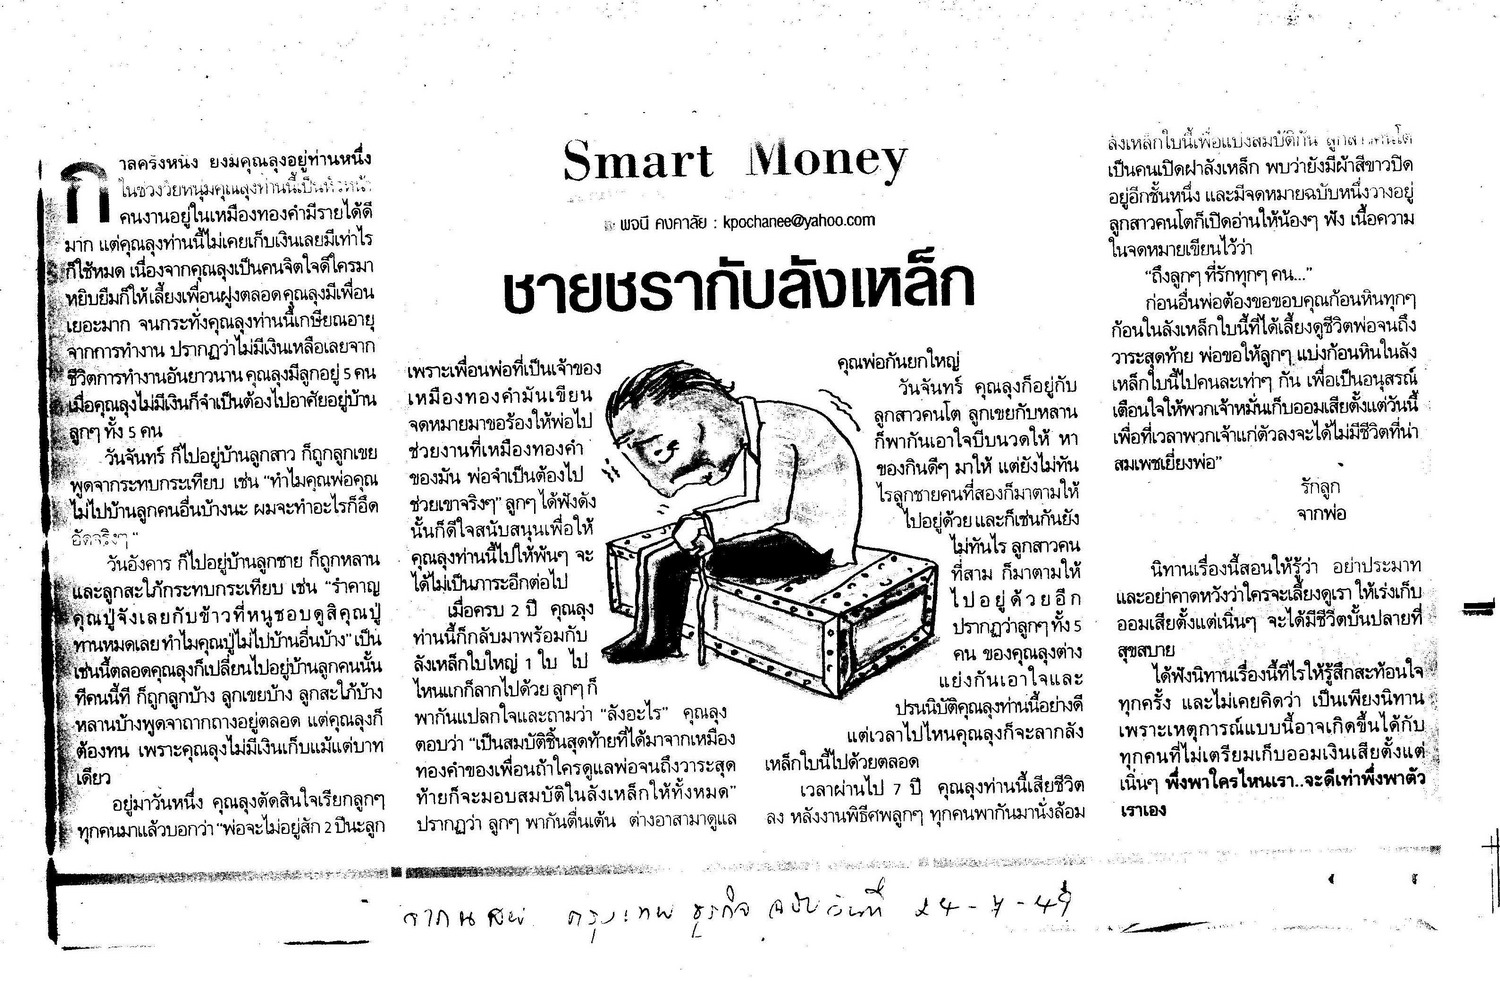 Smart Money - old man and a box.jpg